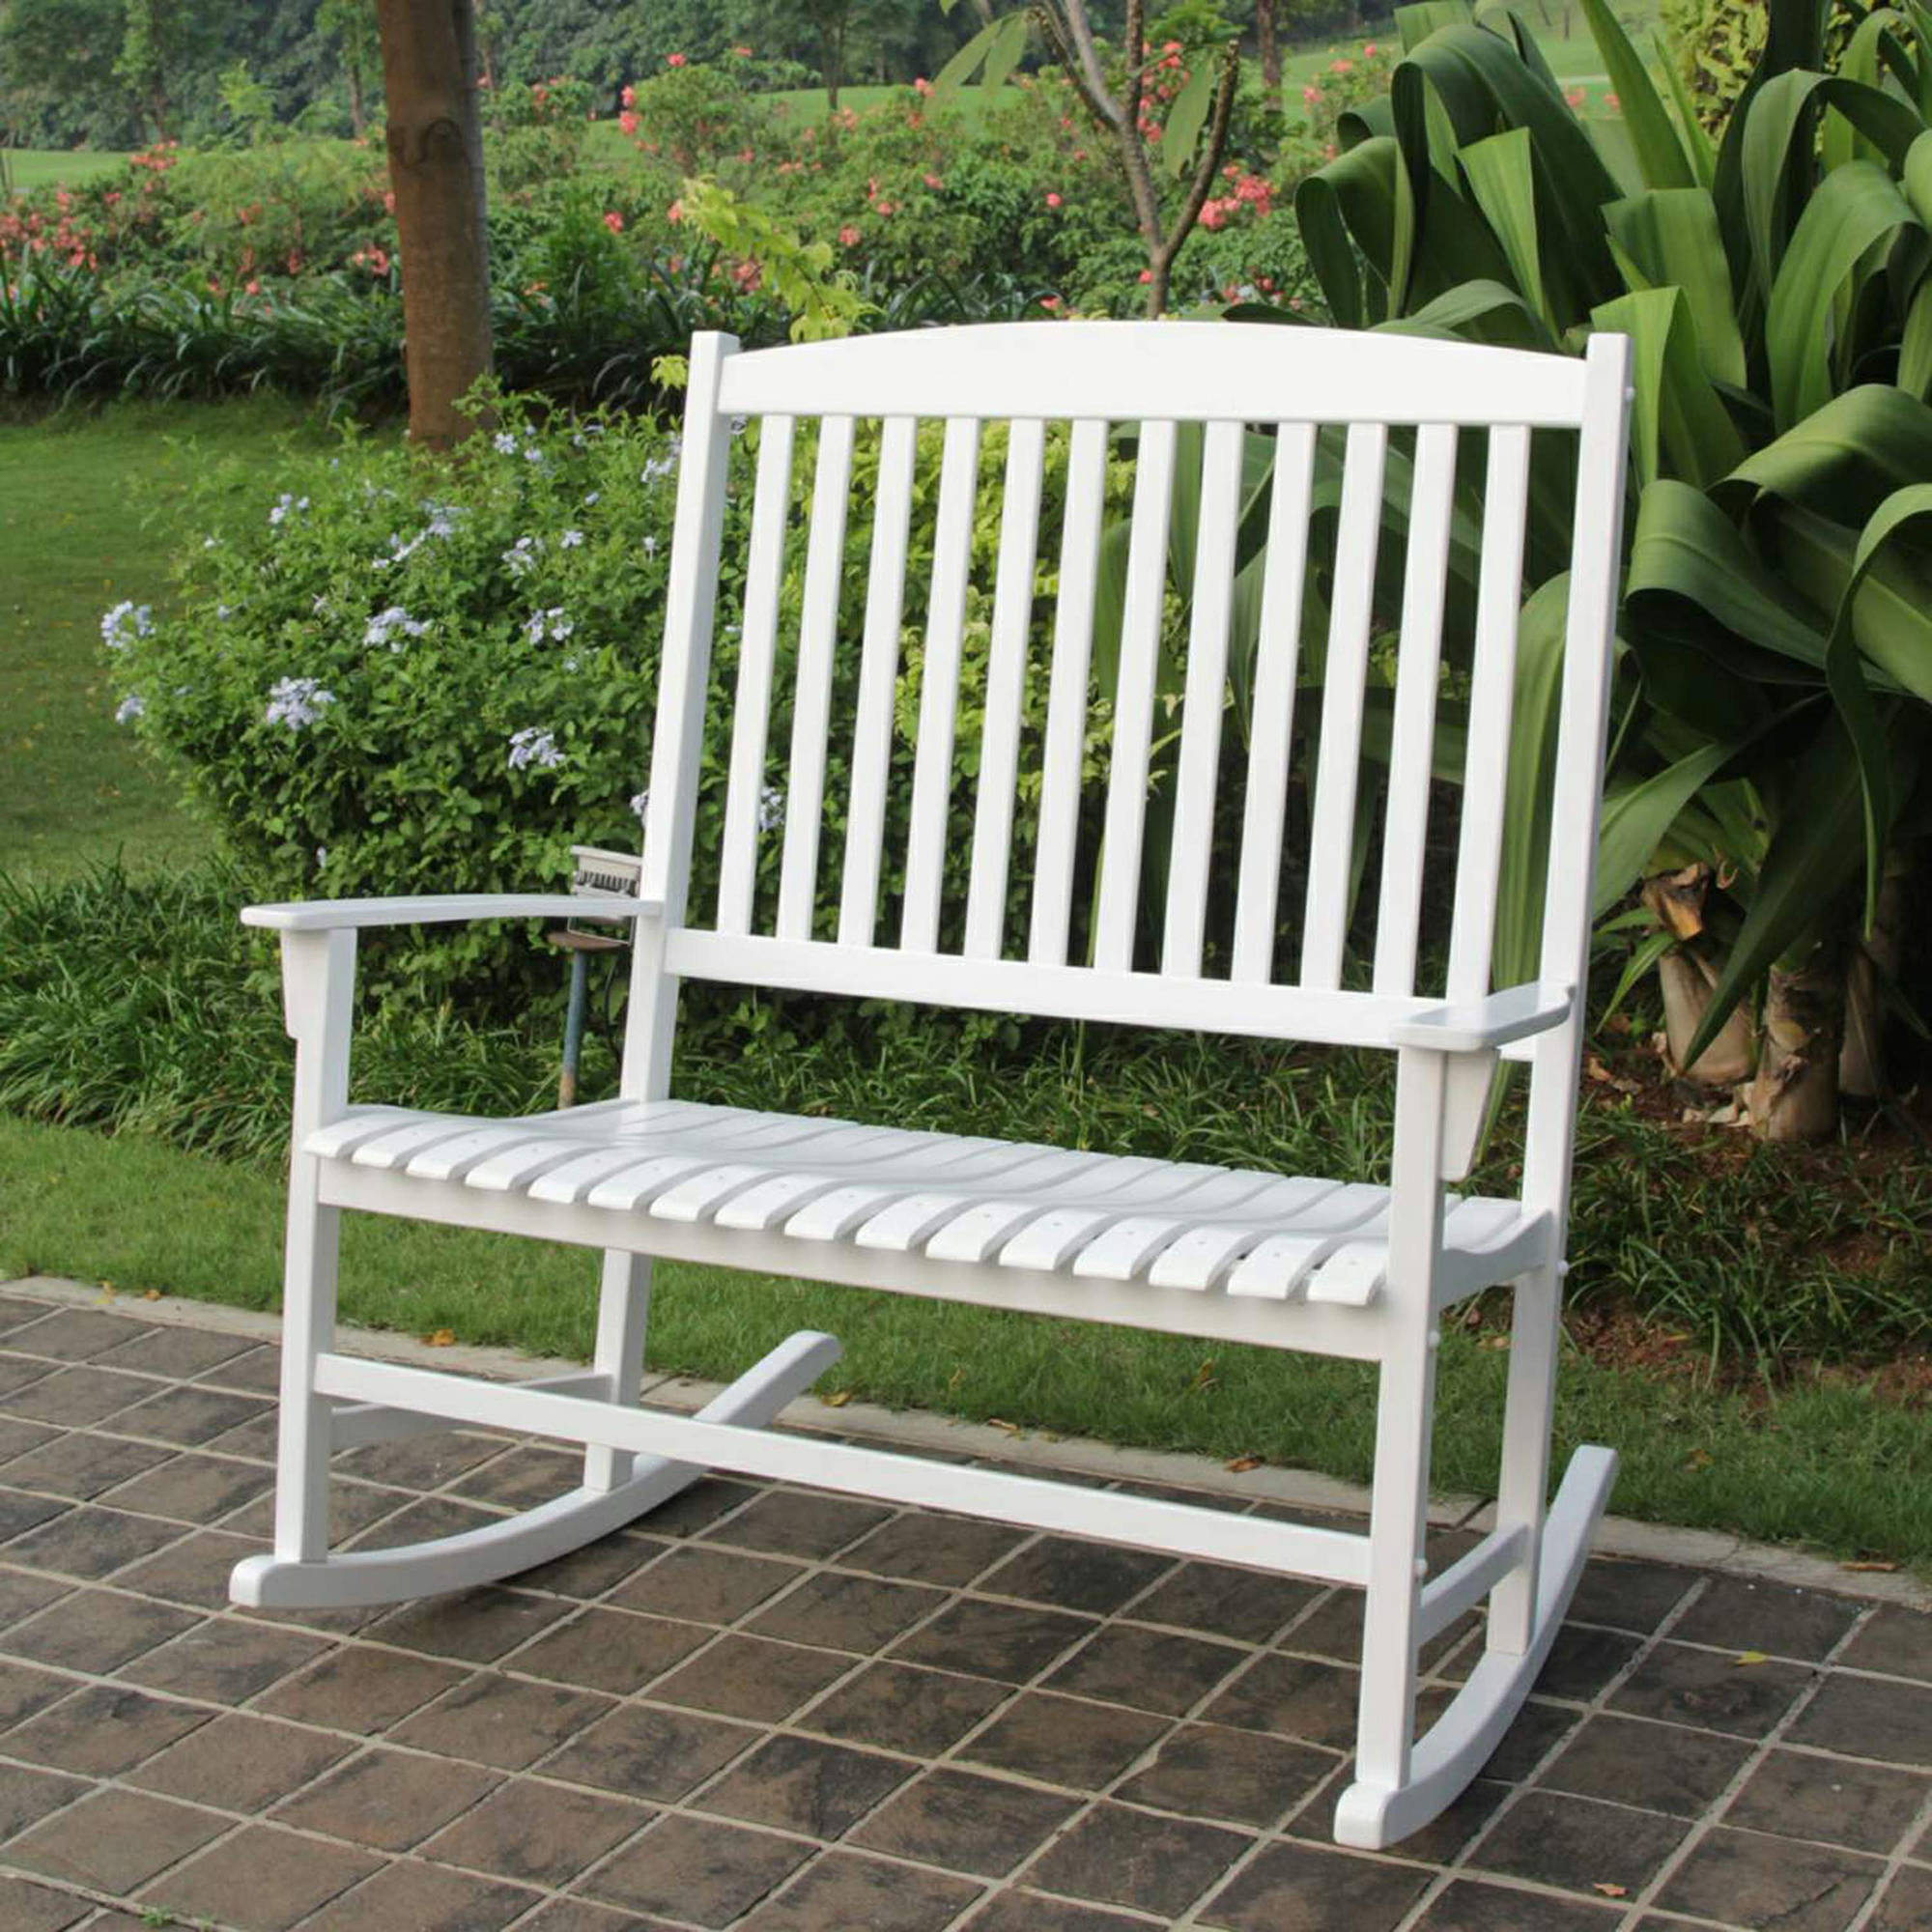 High Quality Mainstays Outdoor 2 Person Double Rocking Chair   Walmart.com